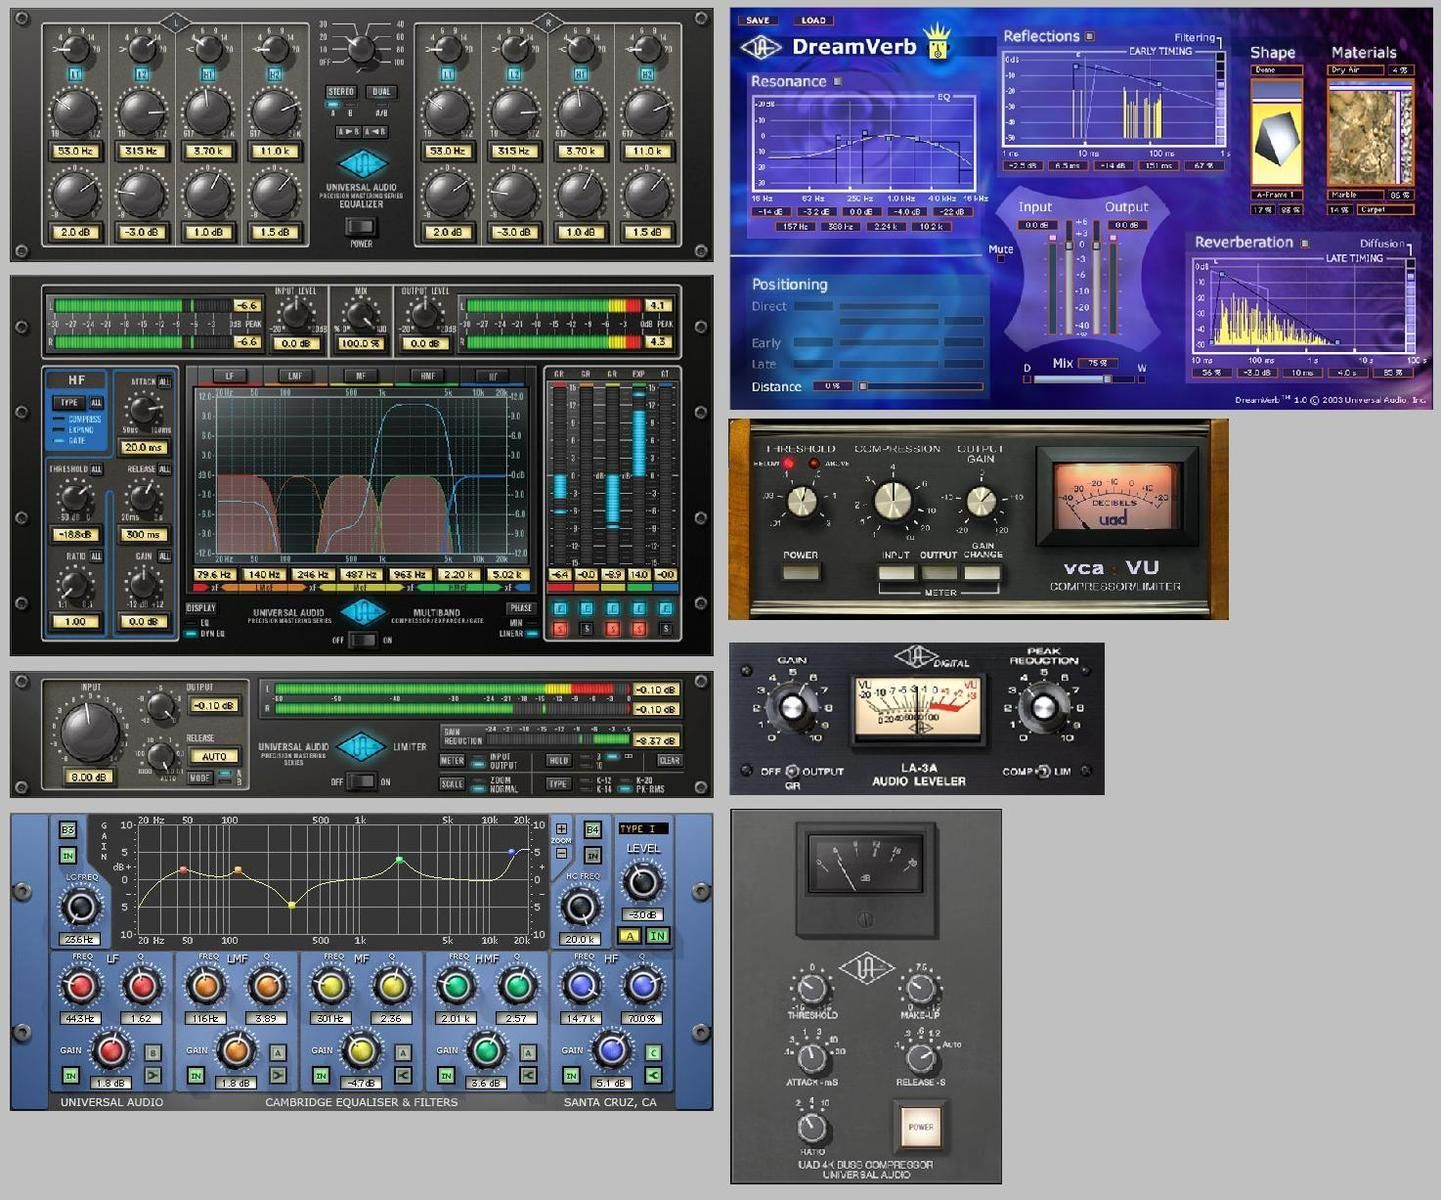 Universal audio uad precision multiband mastering compressor image universal audio uad precision multiband mastering compressor hakimk images stopboris Image collections